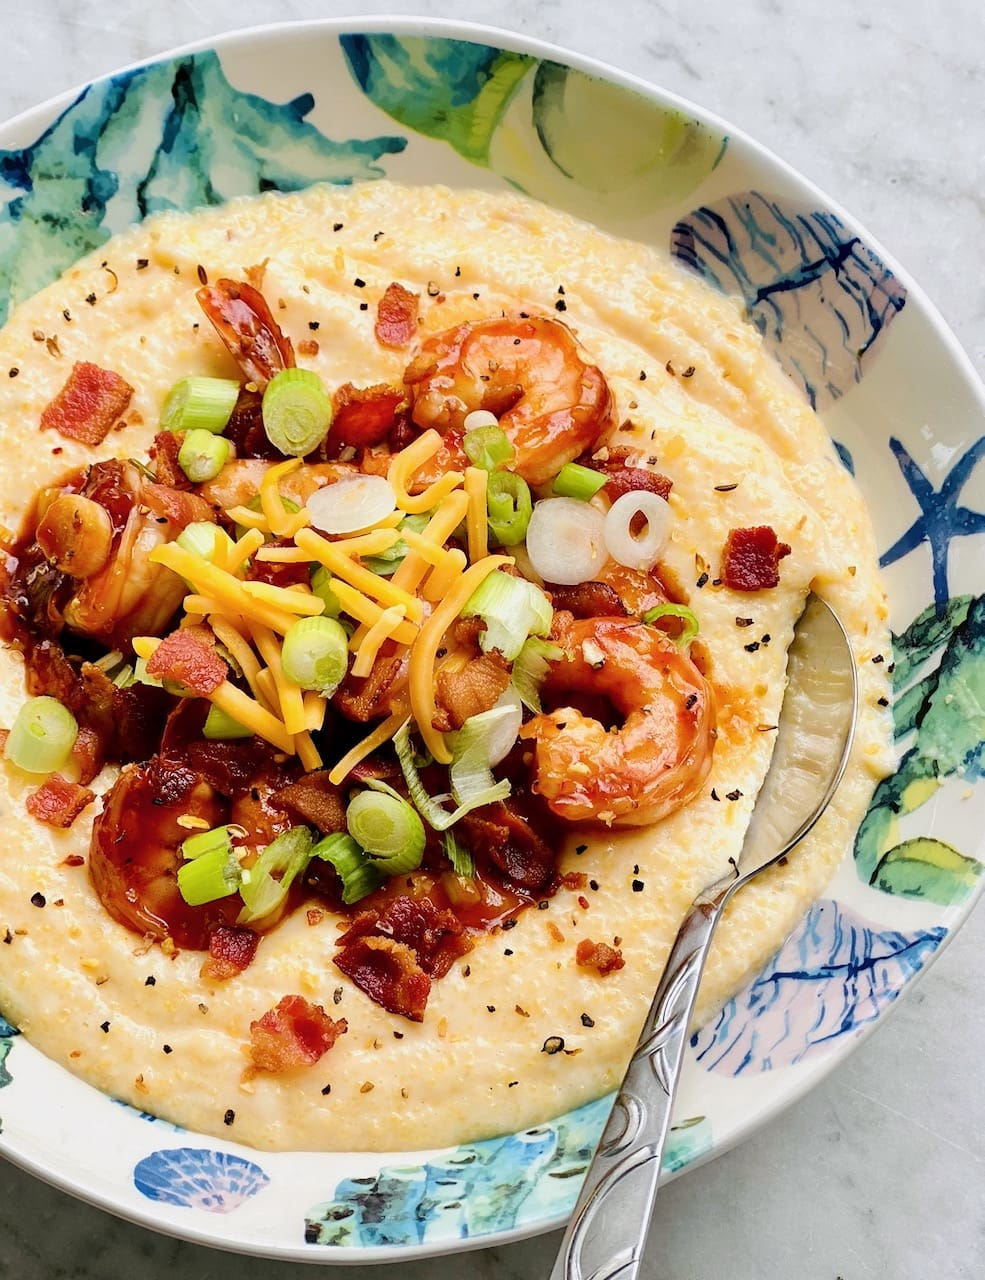 gouda cheese grits topped with BBQ shrimp, bacon and green onions in a seafood bowl